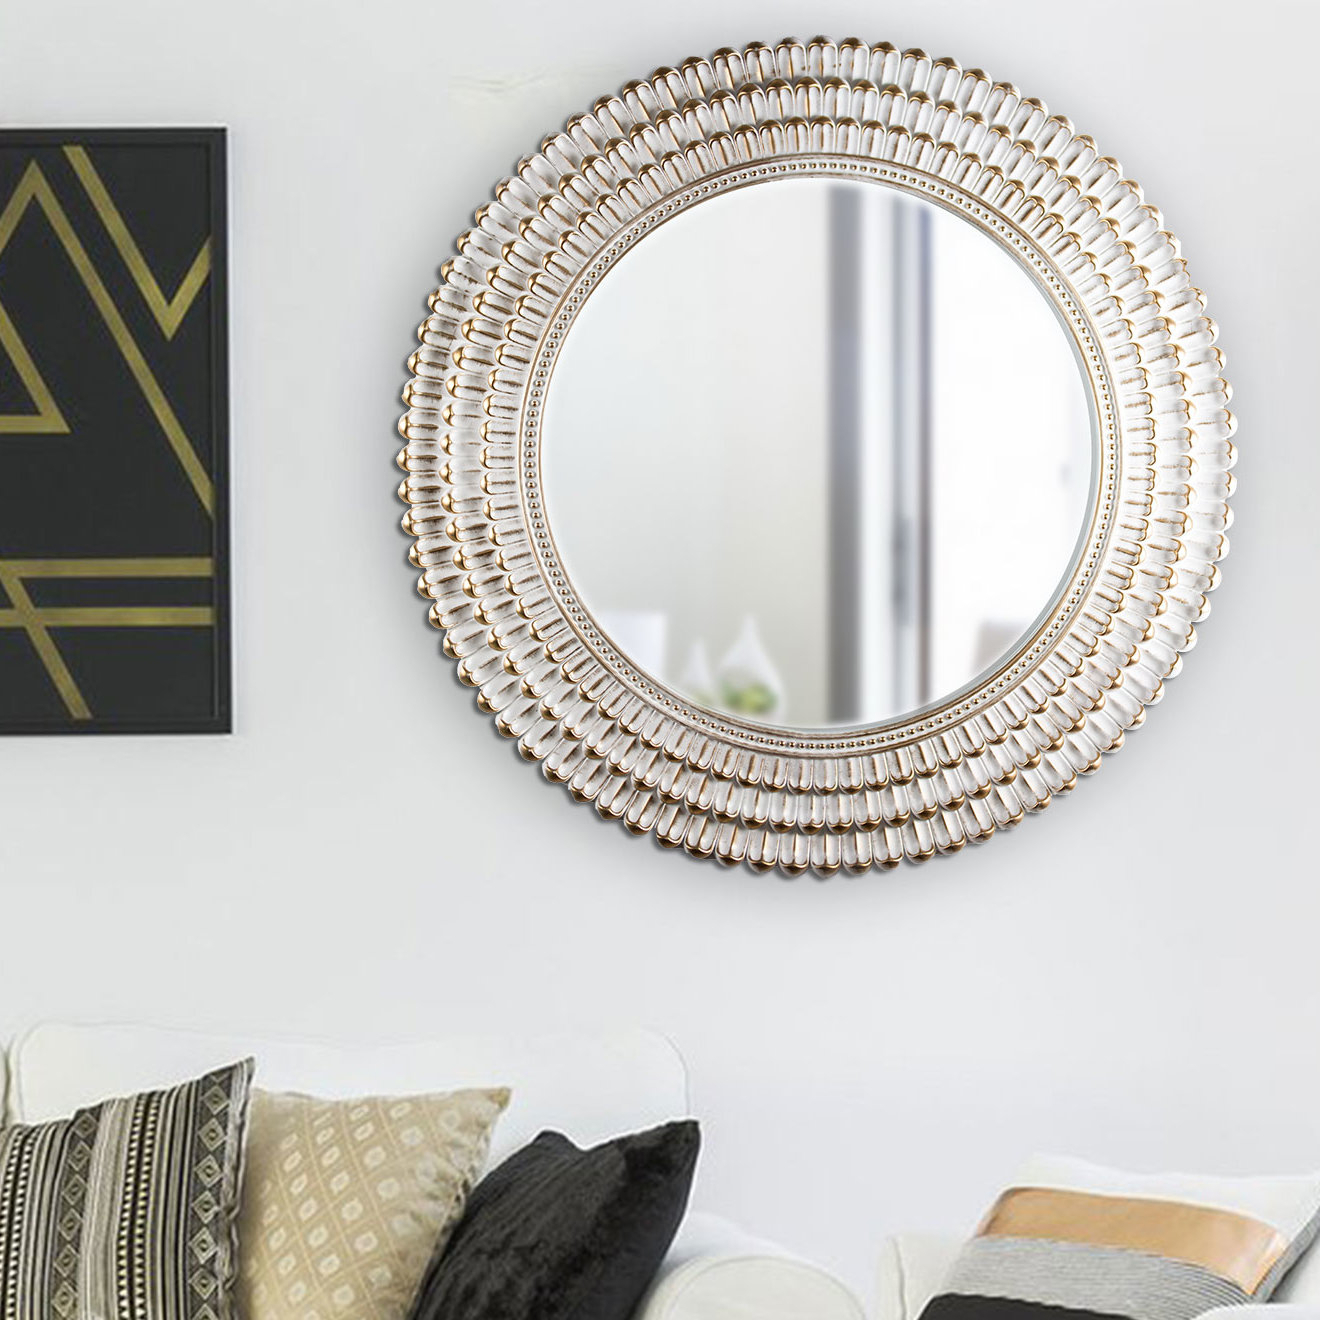 Oakgrove Plastic Frame Round Hanging Wall Coastal Accent Mirror In Karn Vertical Round Resin Wall Mirrors (View 11 of 20)